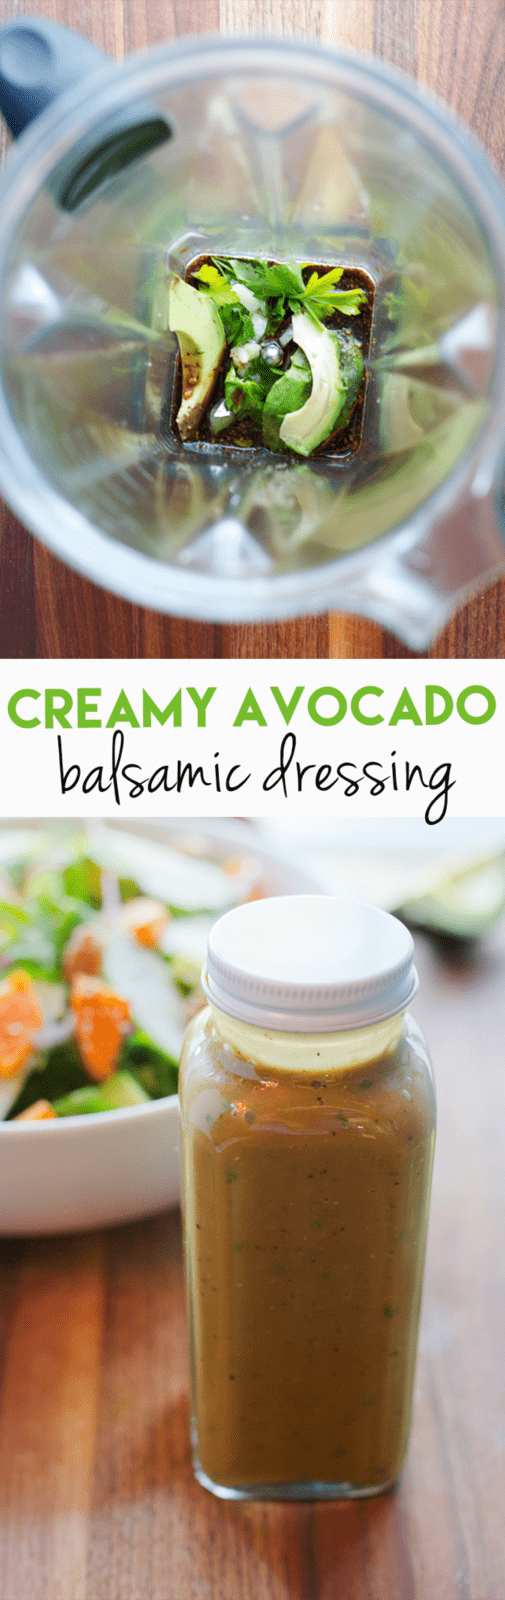 Avocado Balsamic Dressing // Take your balsamic vinaigrette to the next level by using avocado to replace some of the oil. The result is a rich, flavorful and creamy dressing you'll want to drizzle on everything.